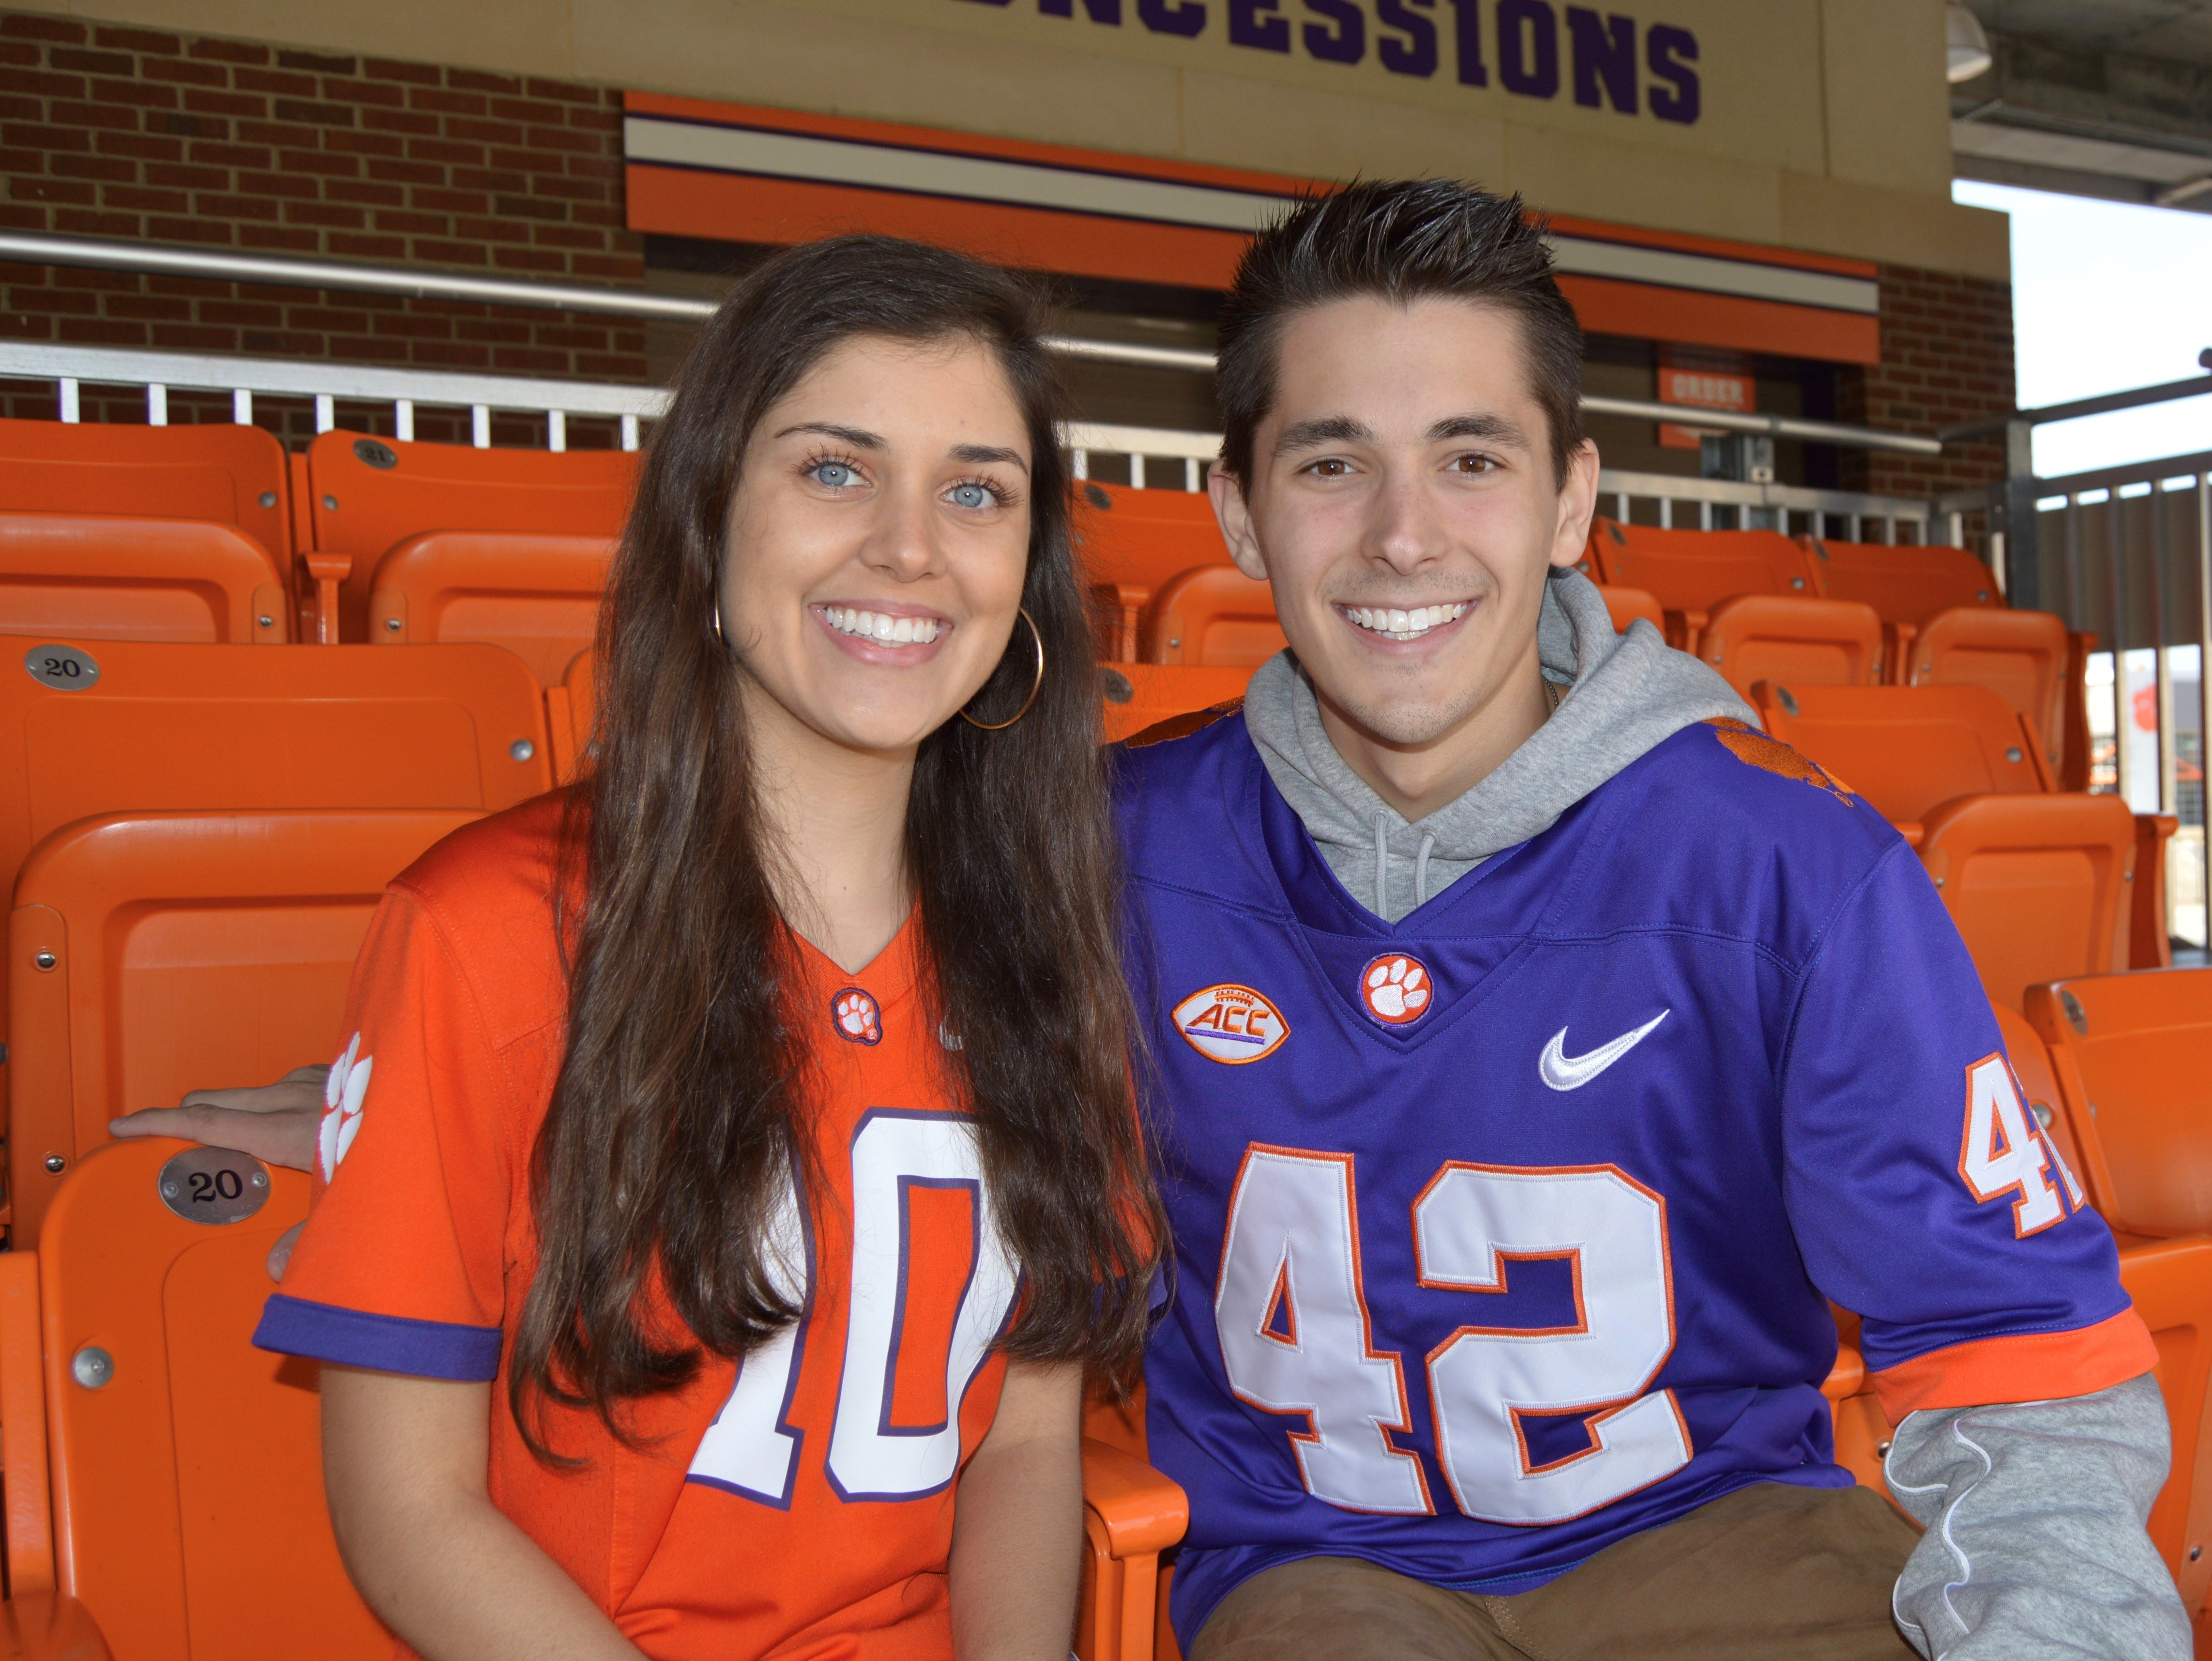 Collin Huskey and Rena Haley are running to be Clemson's next president and vice president for the Undergraduate Student Government.